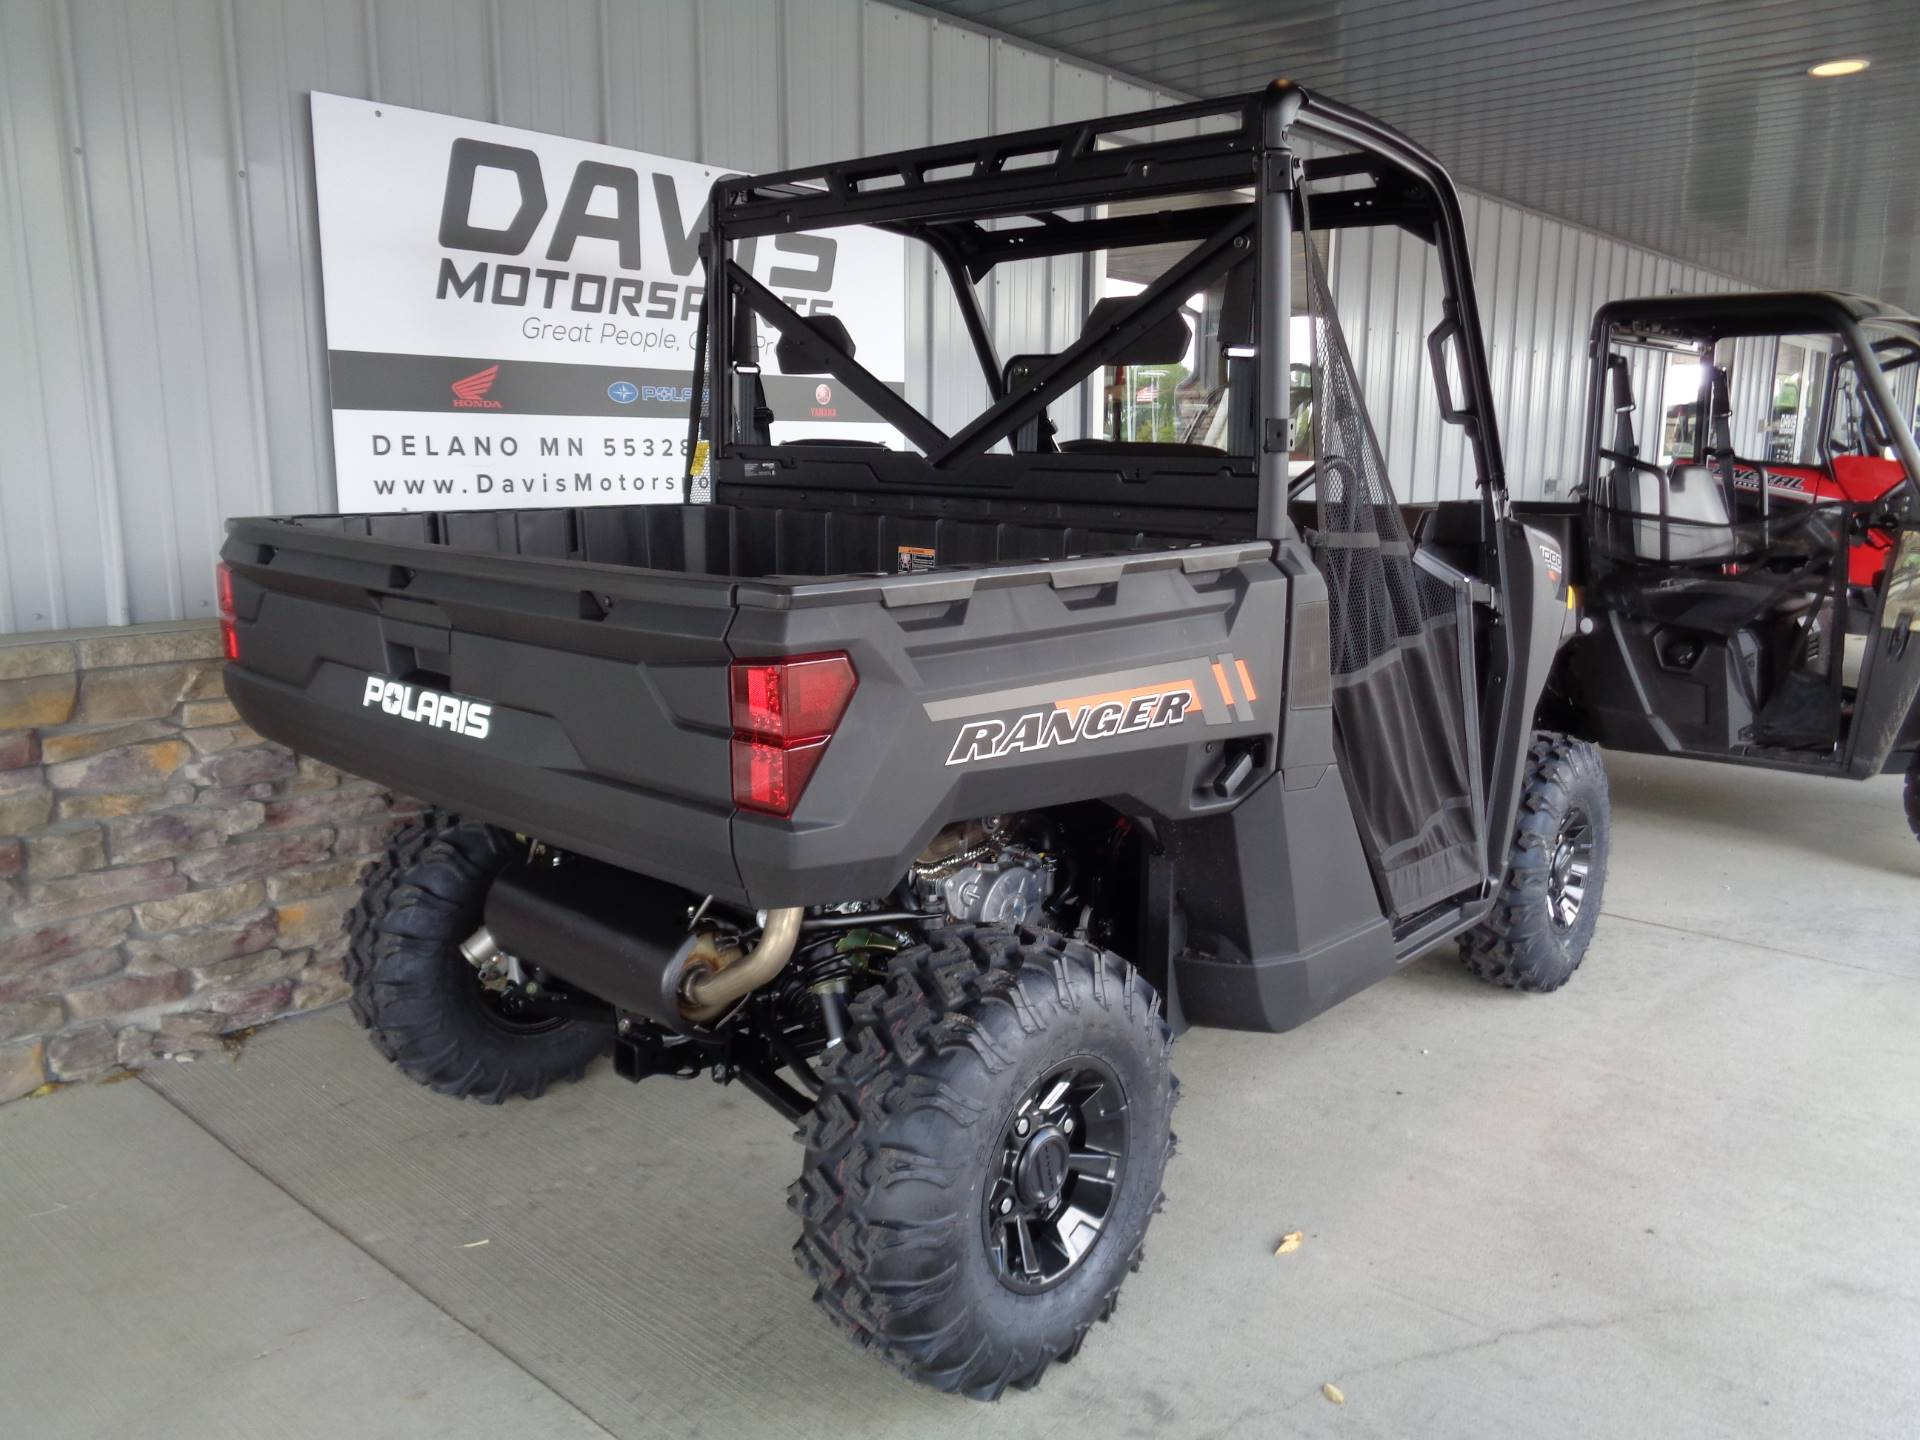 2020 Polaris Ranger 1000 Premium in Delano, Minnesota - Photo 5